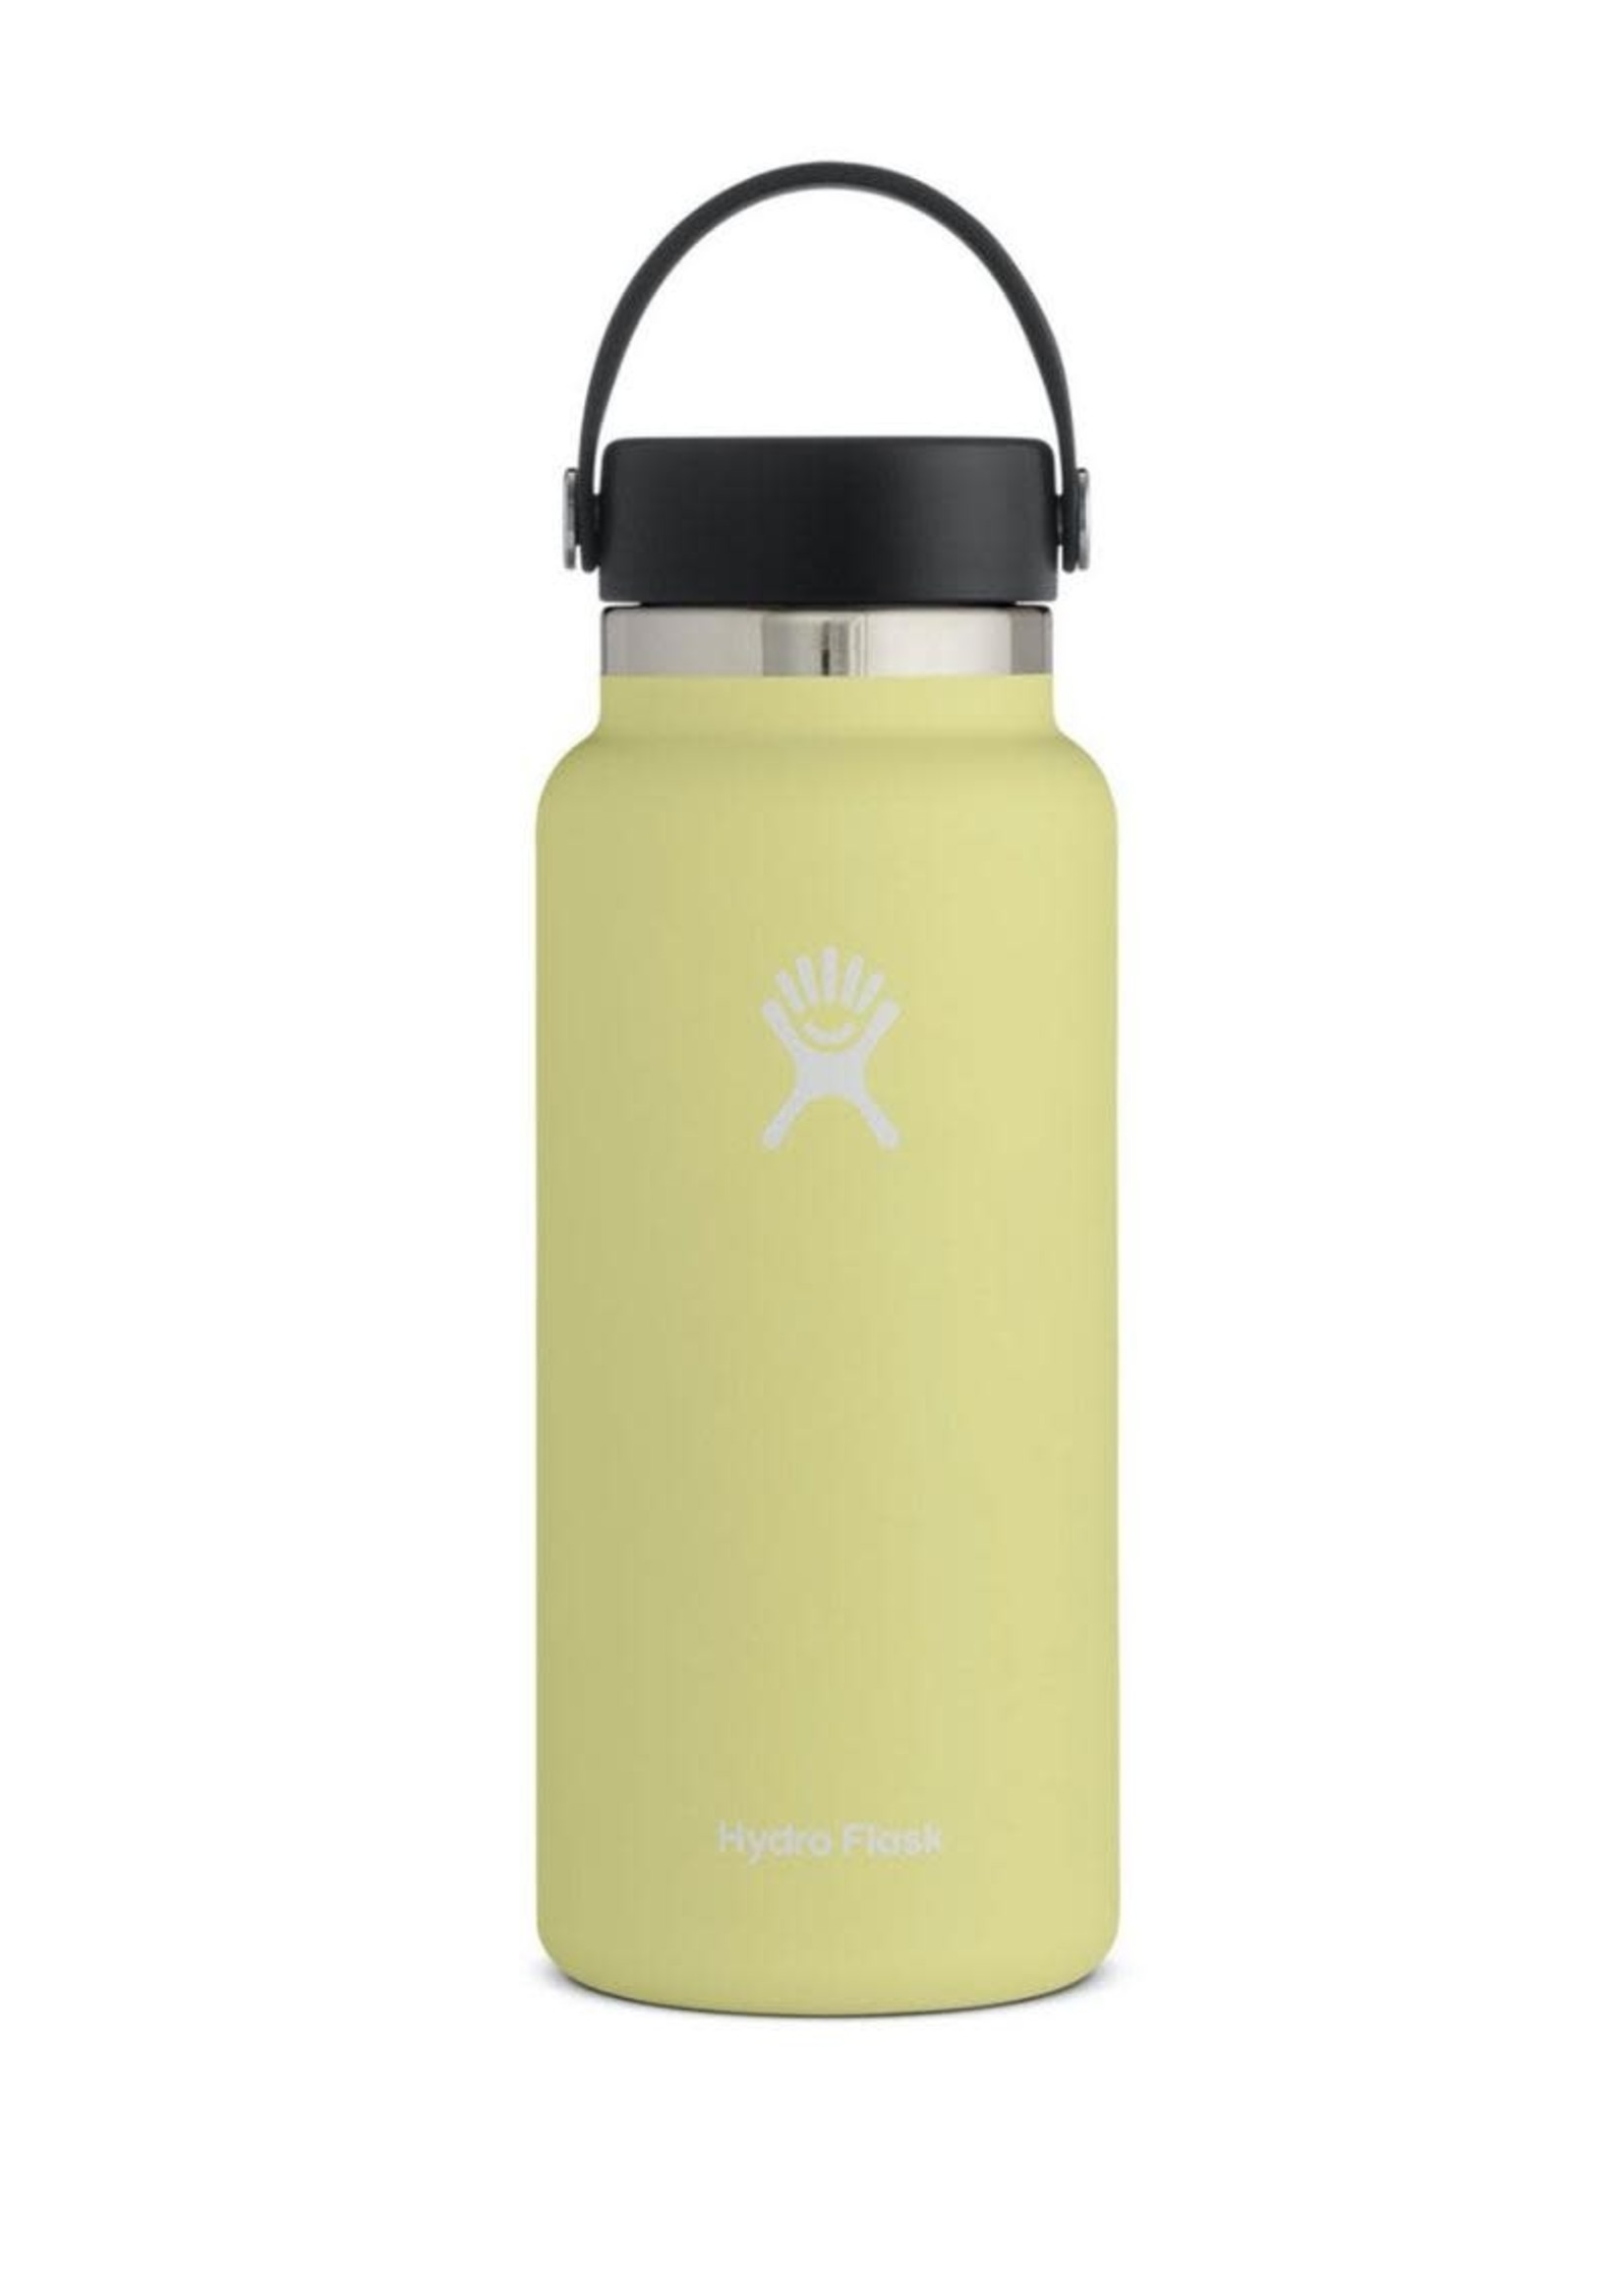 Hydro Flask Hydro Flask, 32 oz Wide Mouth 2.0  Flex Cap Insulated Stainless Steel Bottle in Pinapple